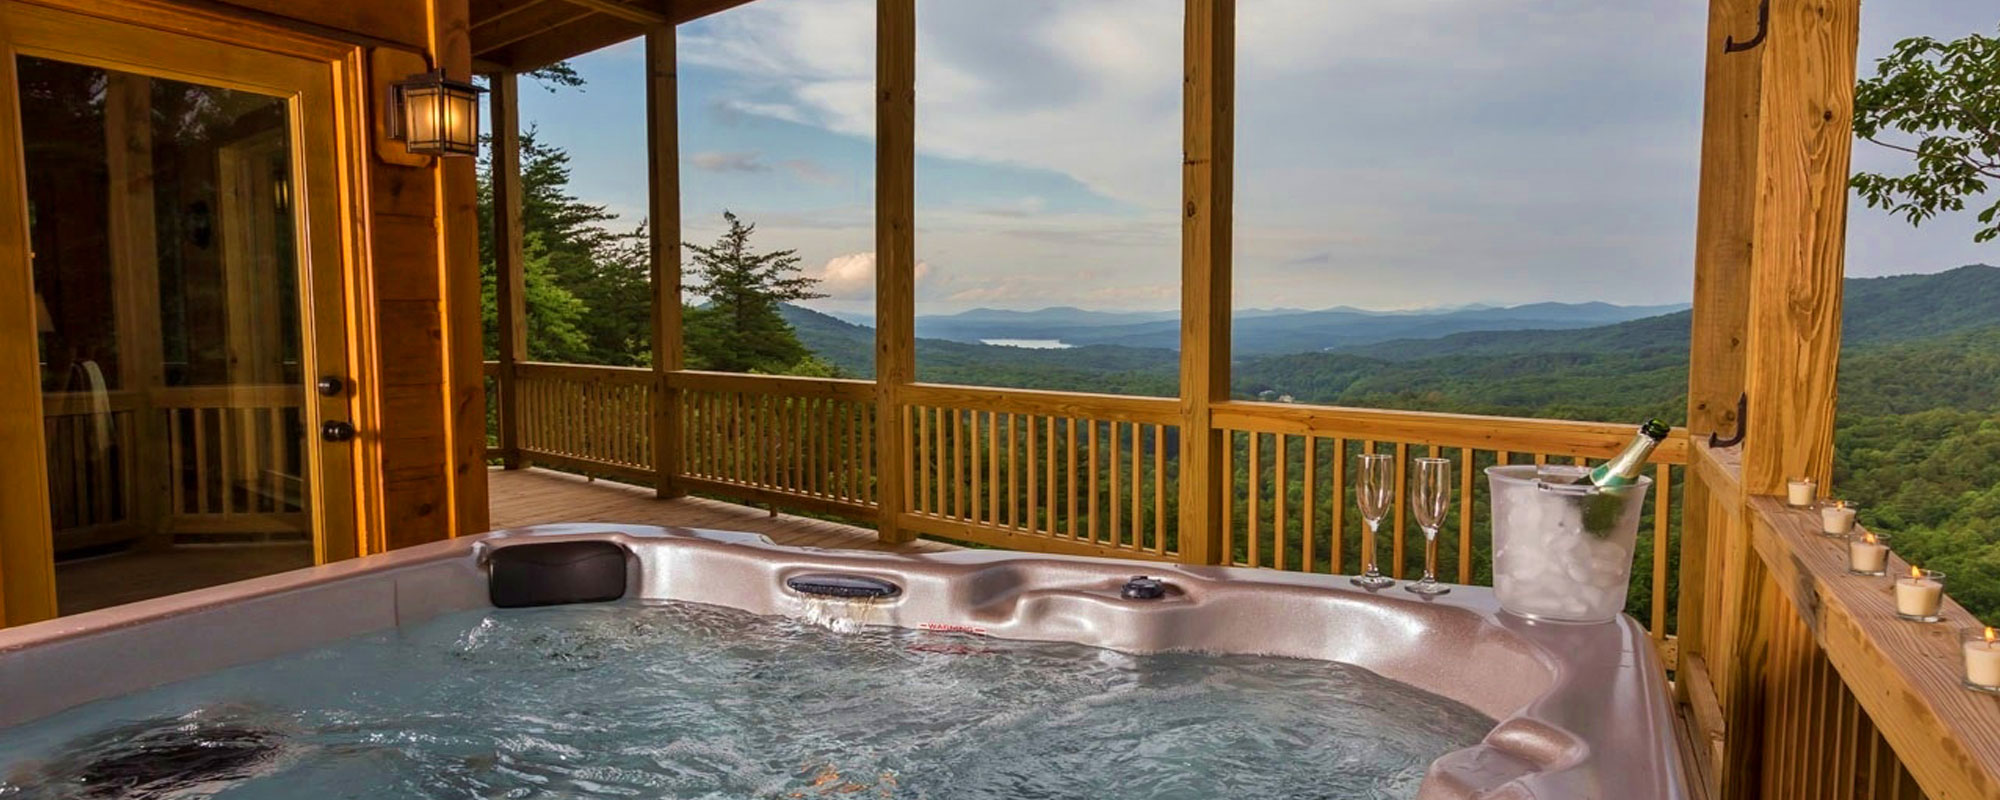 indoor pools cheap es mountain cabin resort elk gatlinburg with tn for mtn splash rentals cabins springs rent